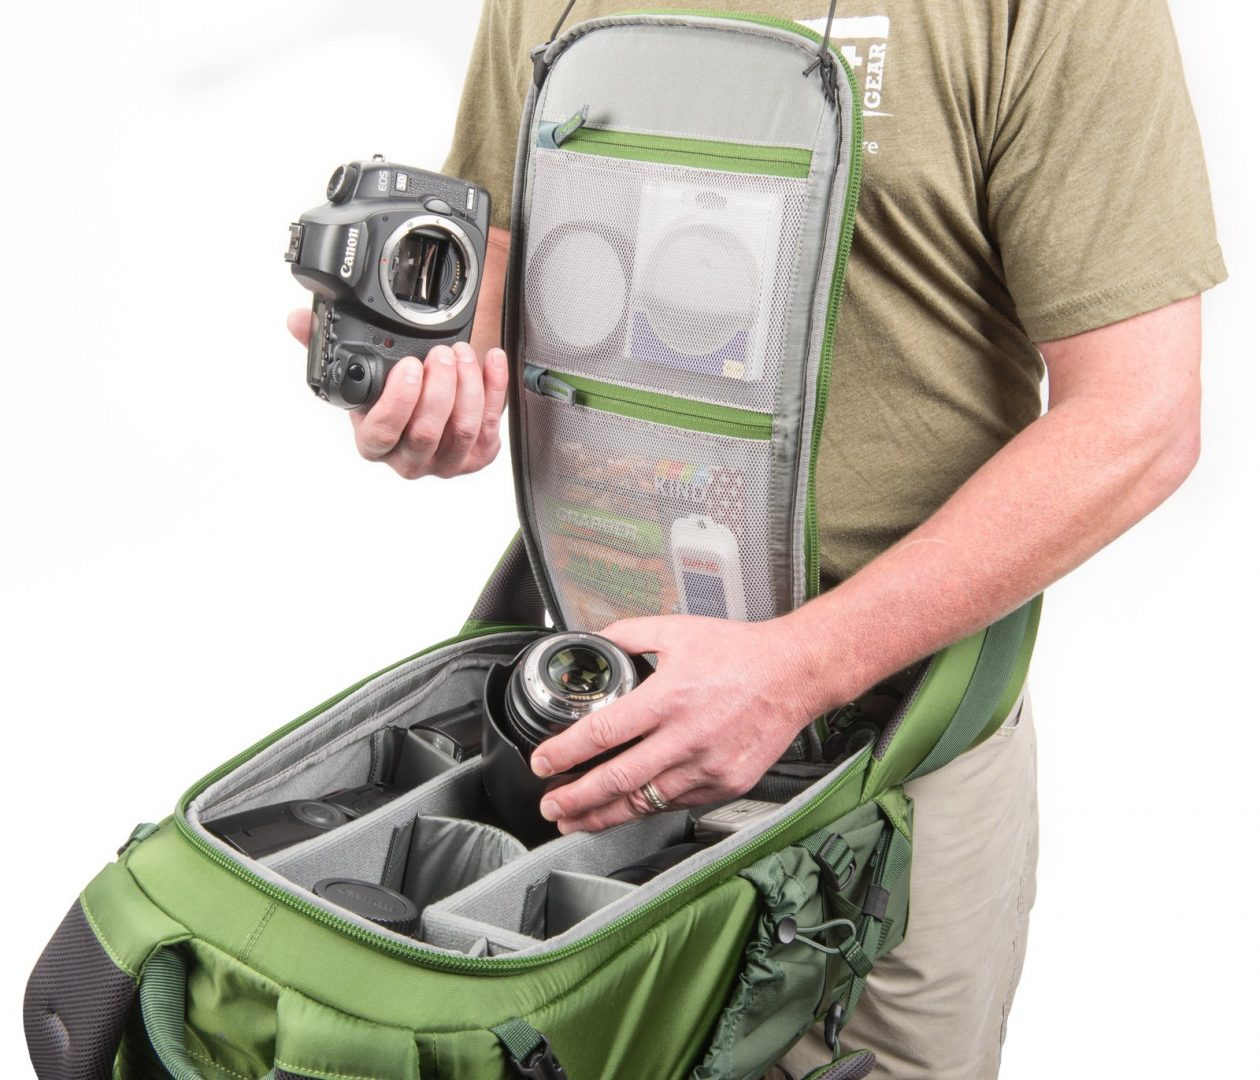 The MindShift BackLight 26 rear access backpack provides access to your photo gear without taking off the backpack. Image Courtesy www.ThinkTankPhoto.com